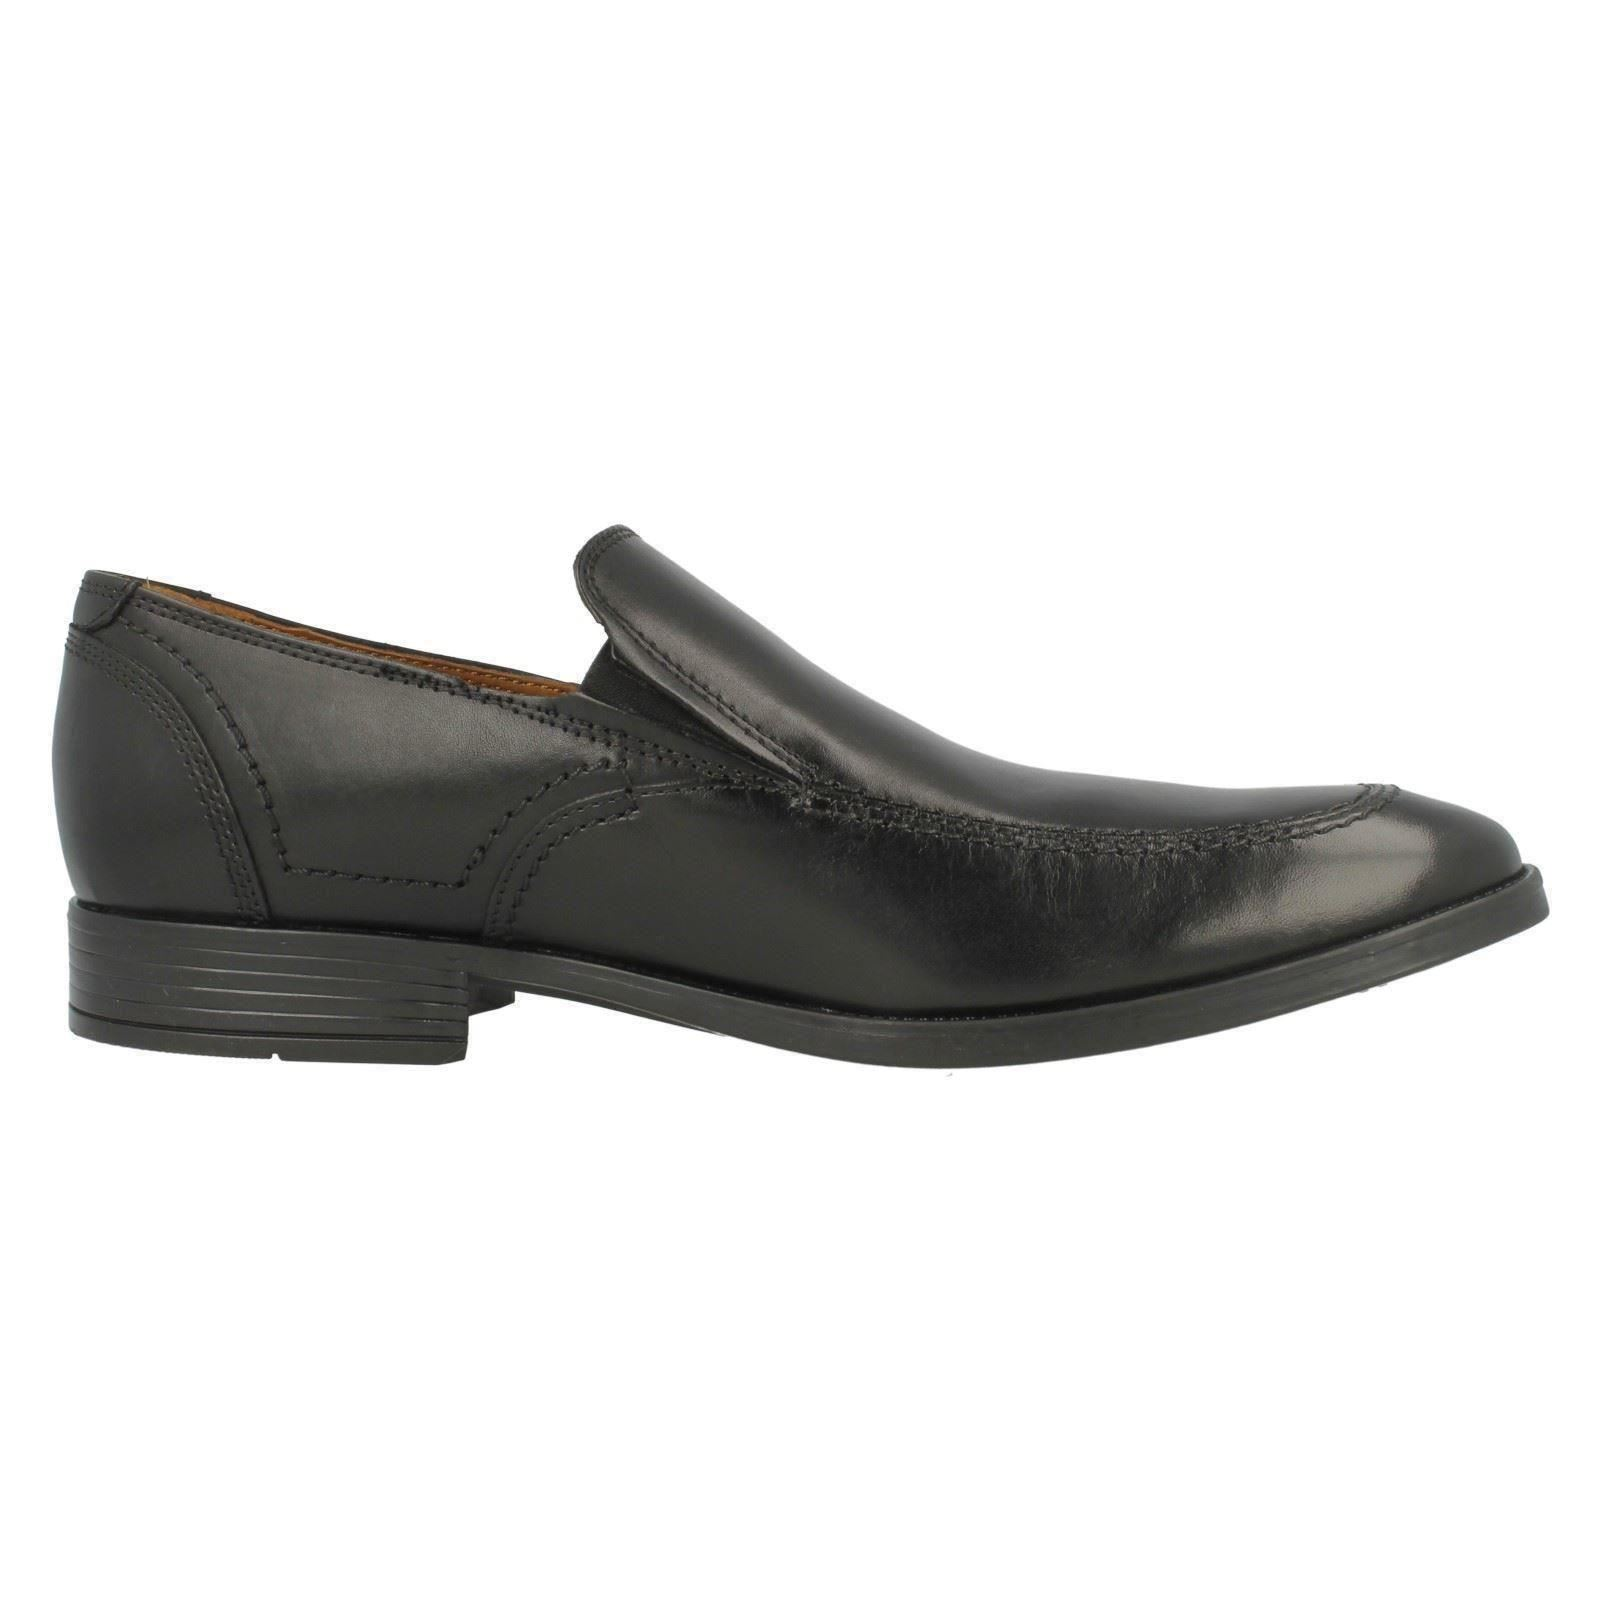 Men's Clarks Formal Shoes Style - Kalden Step